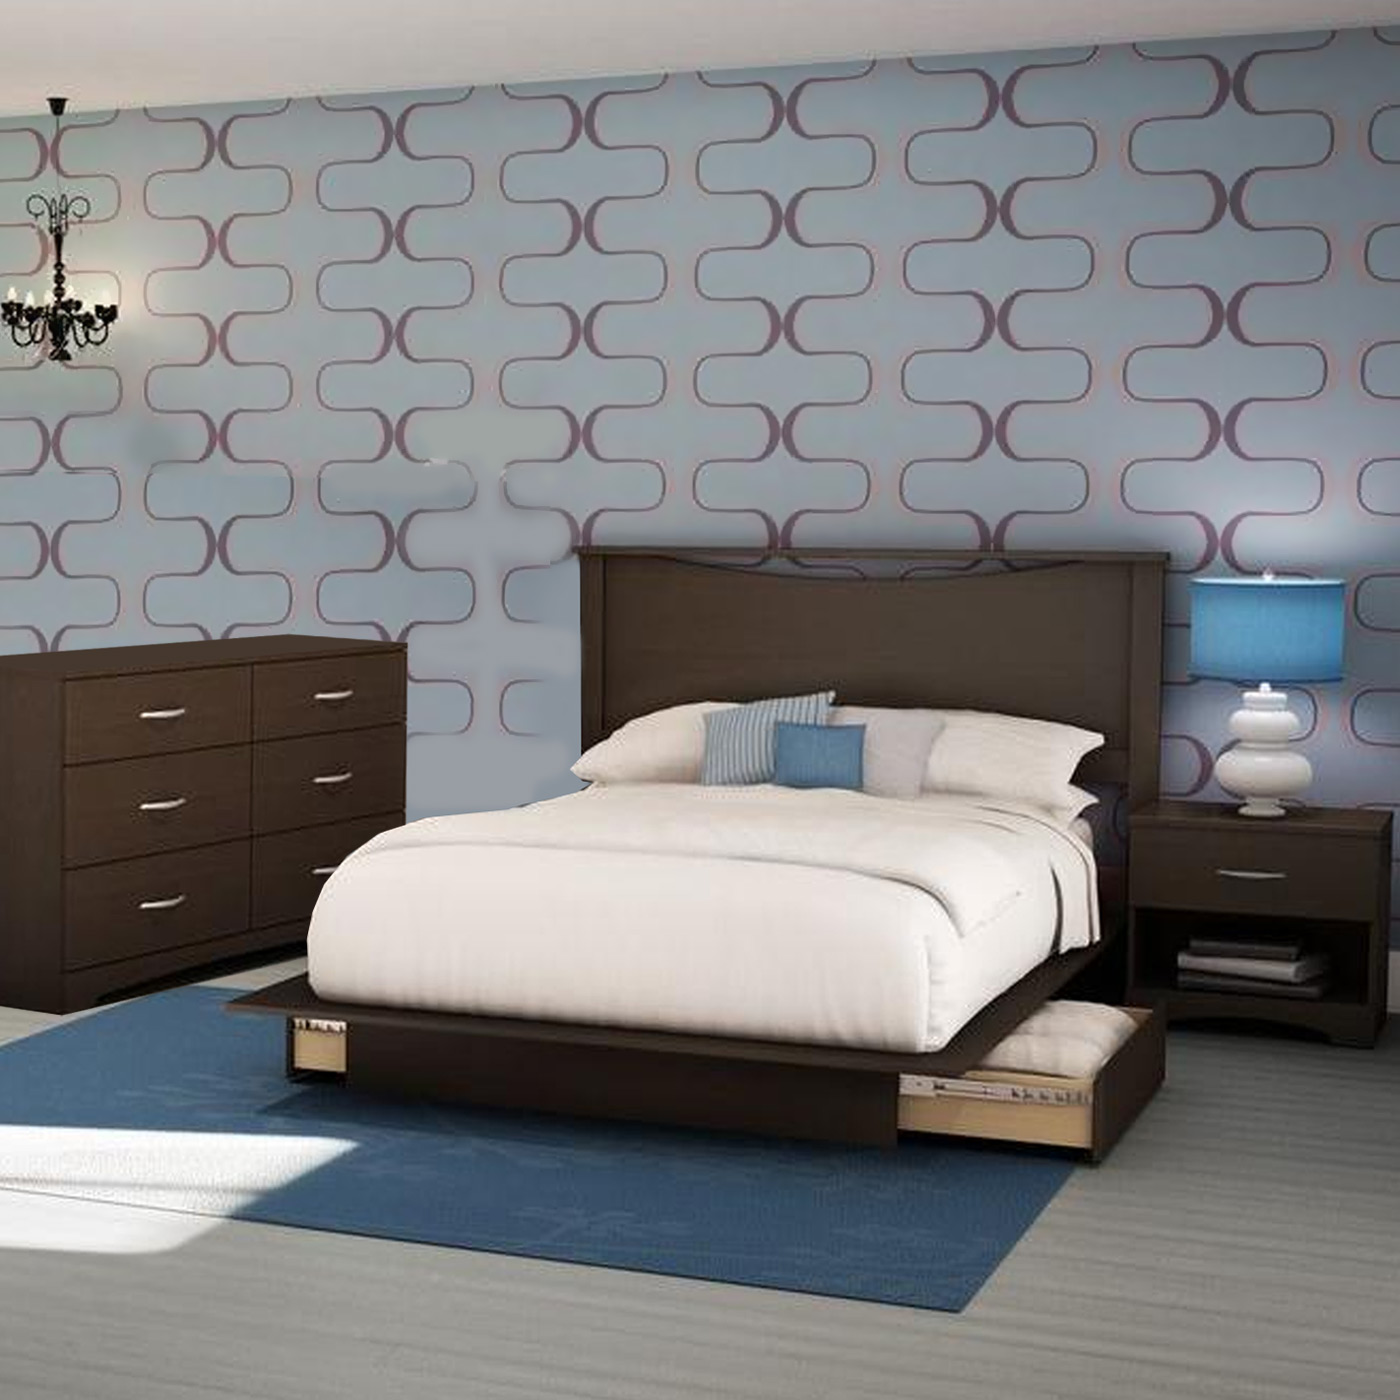 Picture of: Southshore Back Bay 3 Piece Bedroom Set Back Bay Queen Platform Bed With Storage Step One Double Dresser And Nightstand In Chocolate Free Shipping